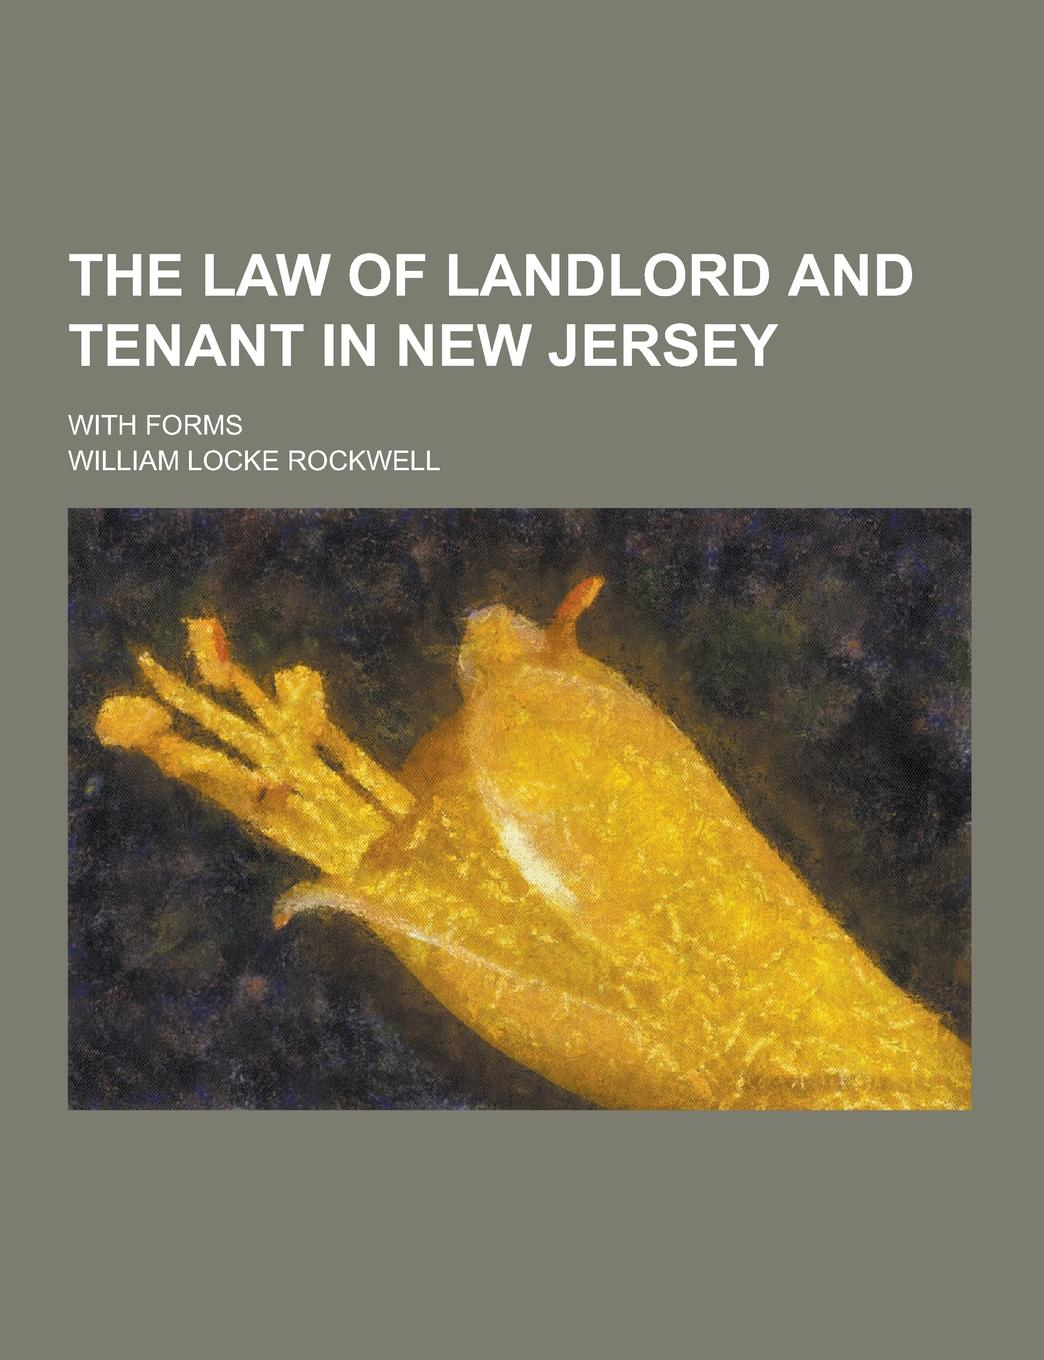 William Locke Rockwell The Law of Landlord and Tenant in New Jersey; With Forms l v n накидка